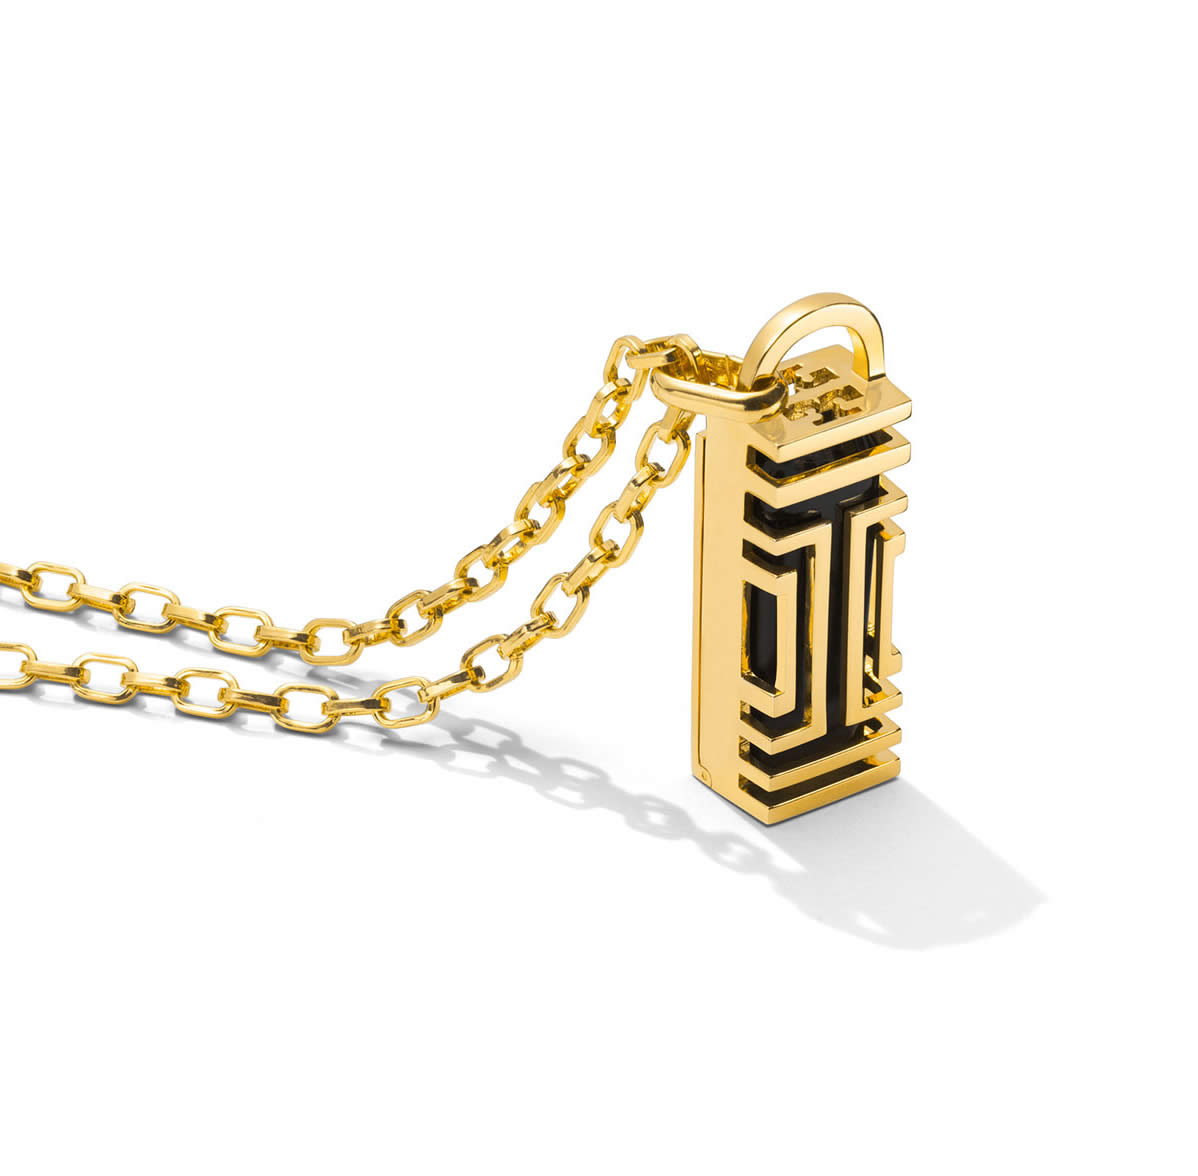 Tory Burch for Fitbit Fret Pendant Necklack